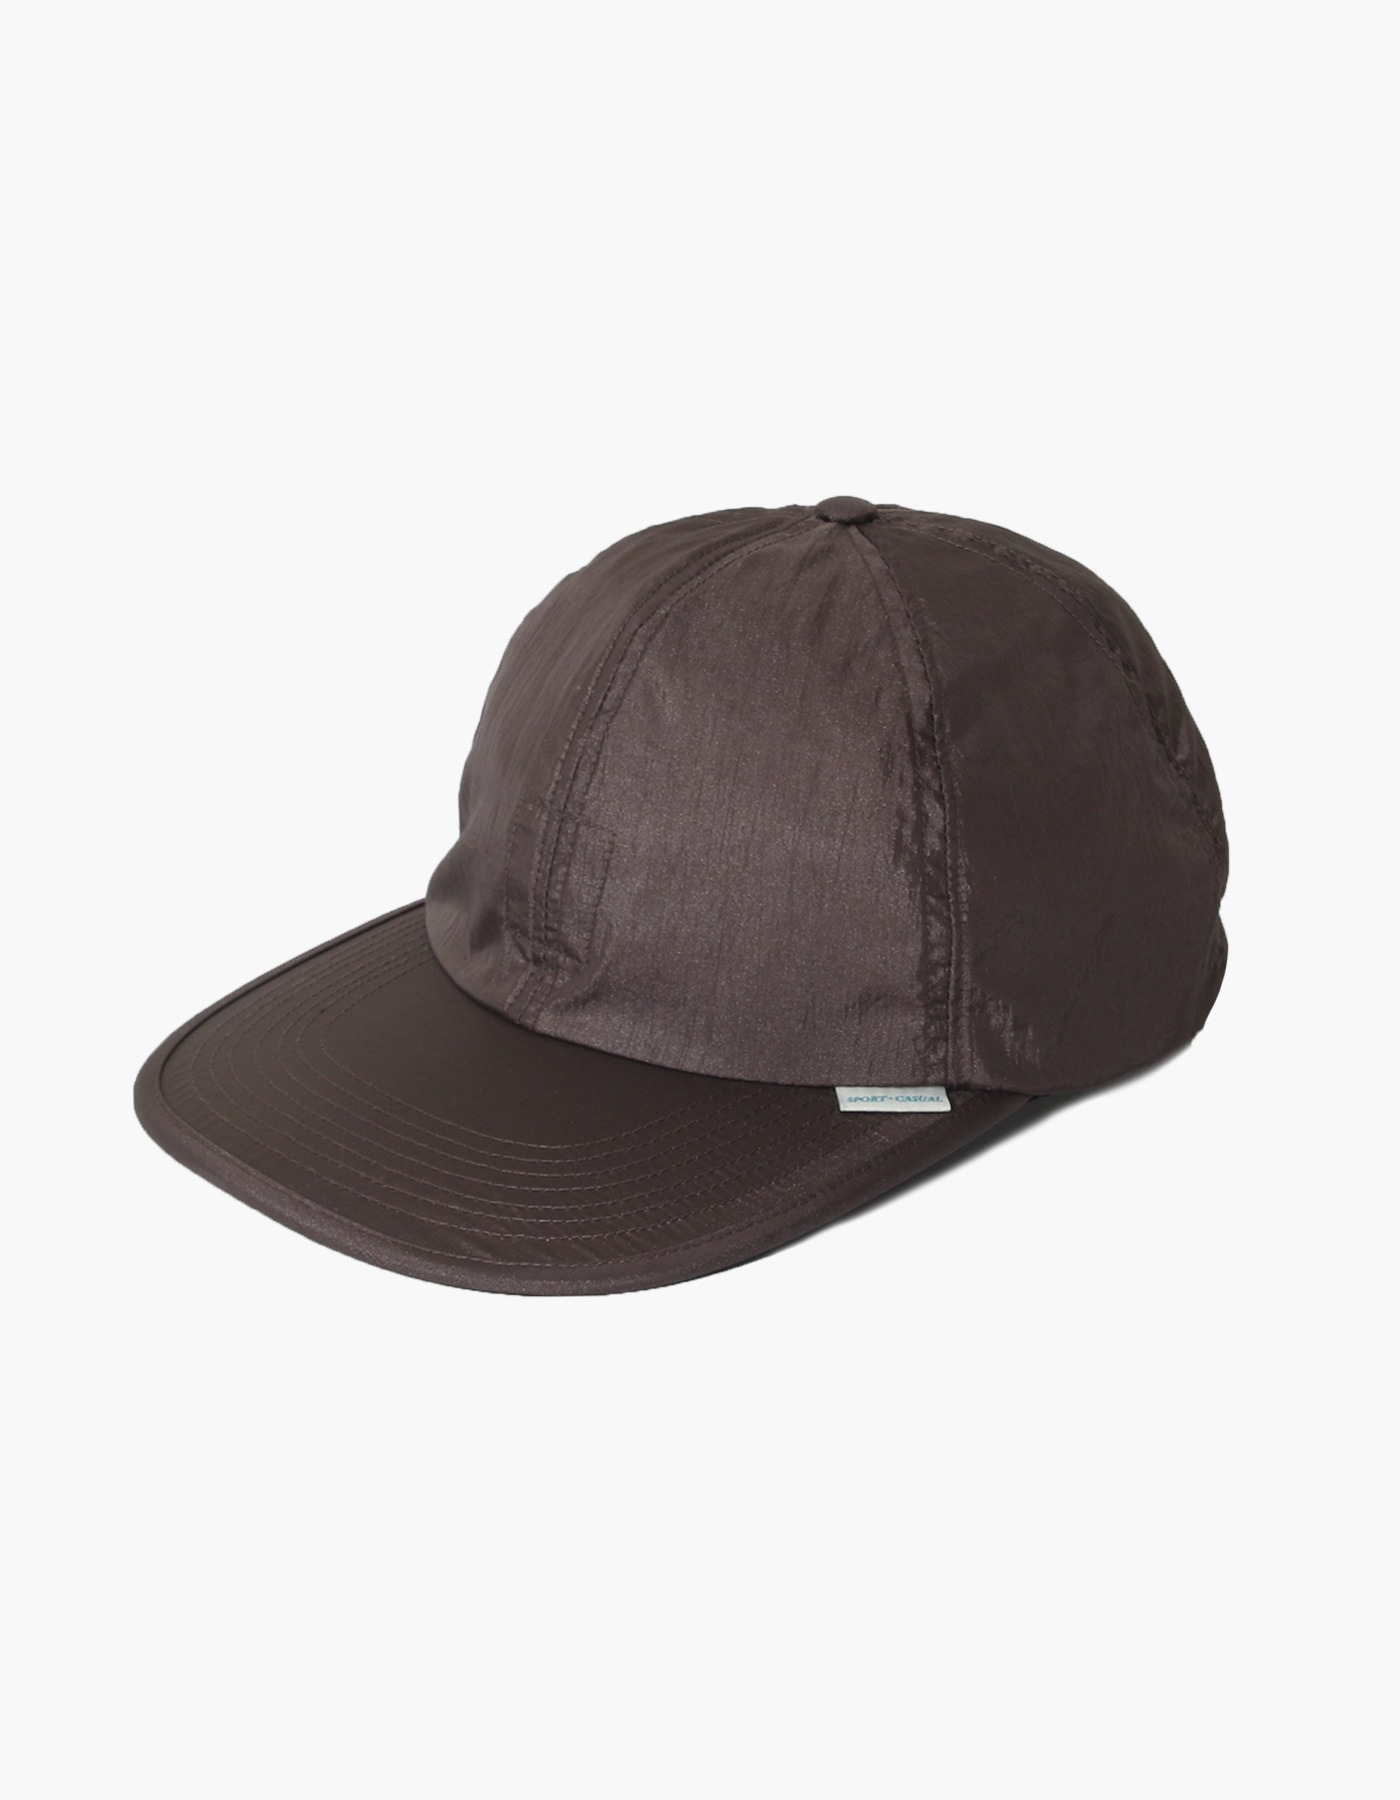 NYLON DIAMOND WASHER 6 PANEL CAP / DARK BROWN